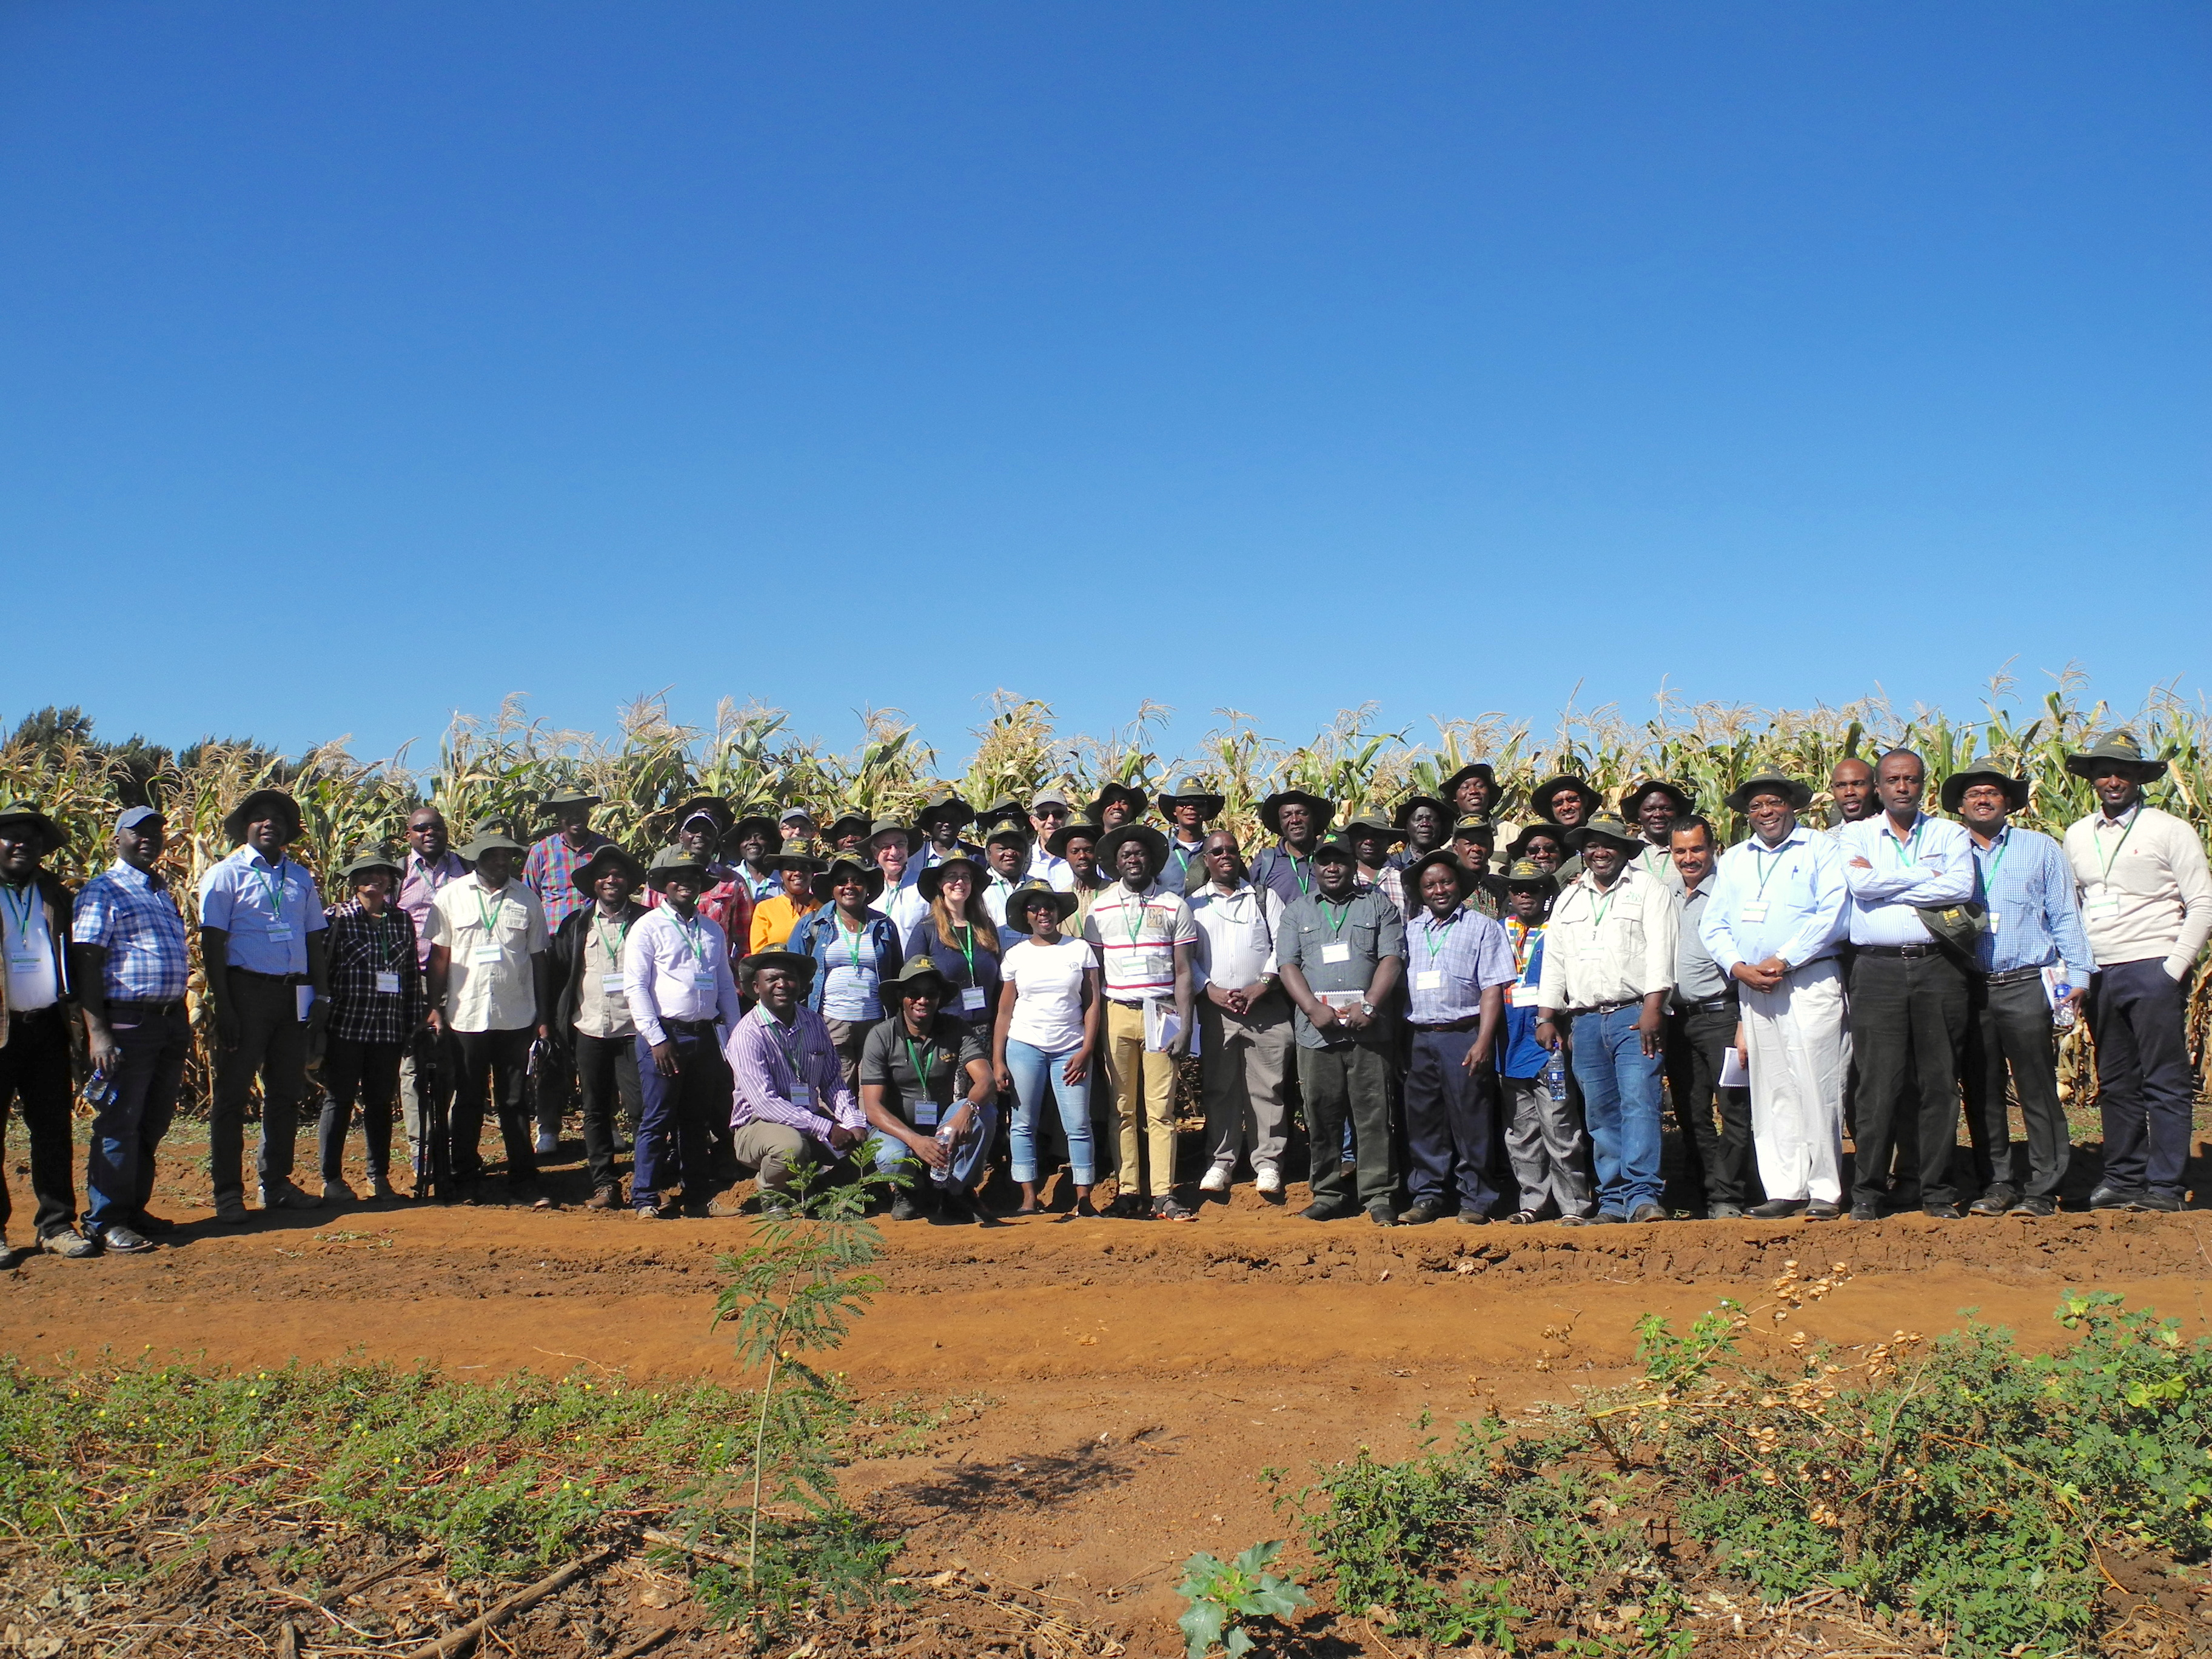 STMA meeting participants pose for a group photo during the field visit to QualiBasic Seed. (Photo: Jennifer Johnson/CIMMYT)